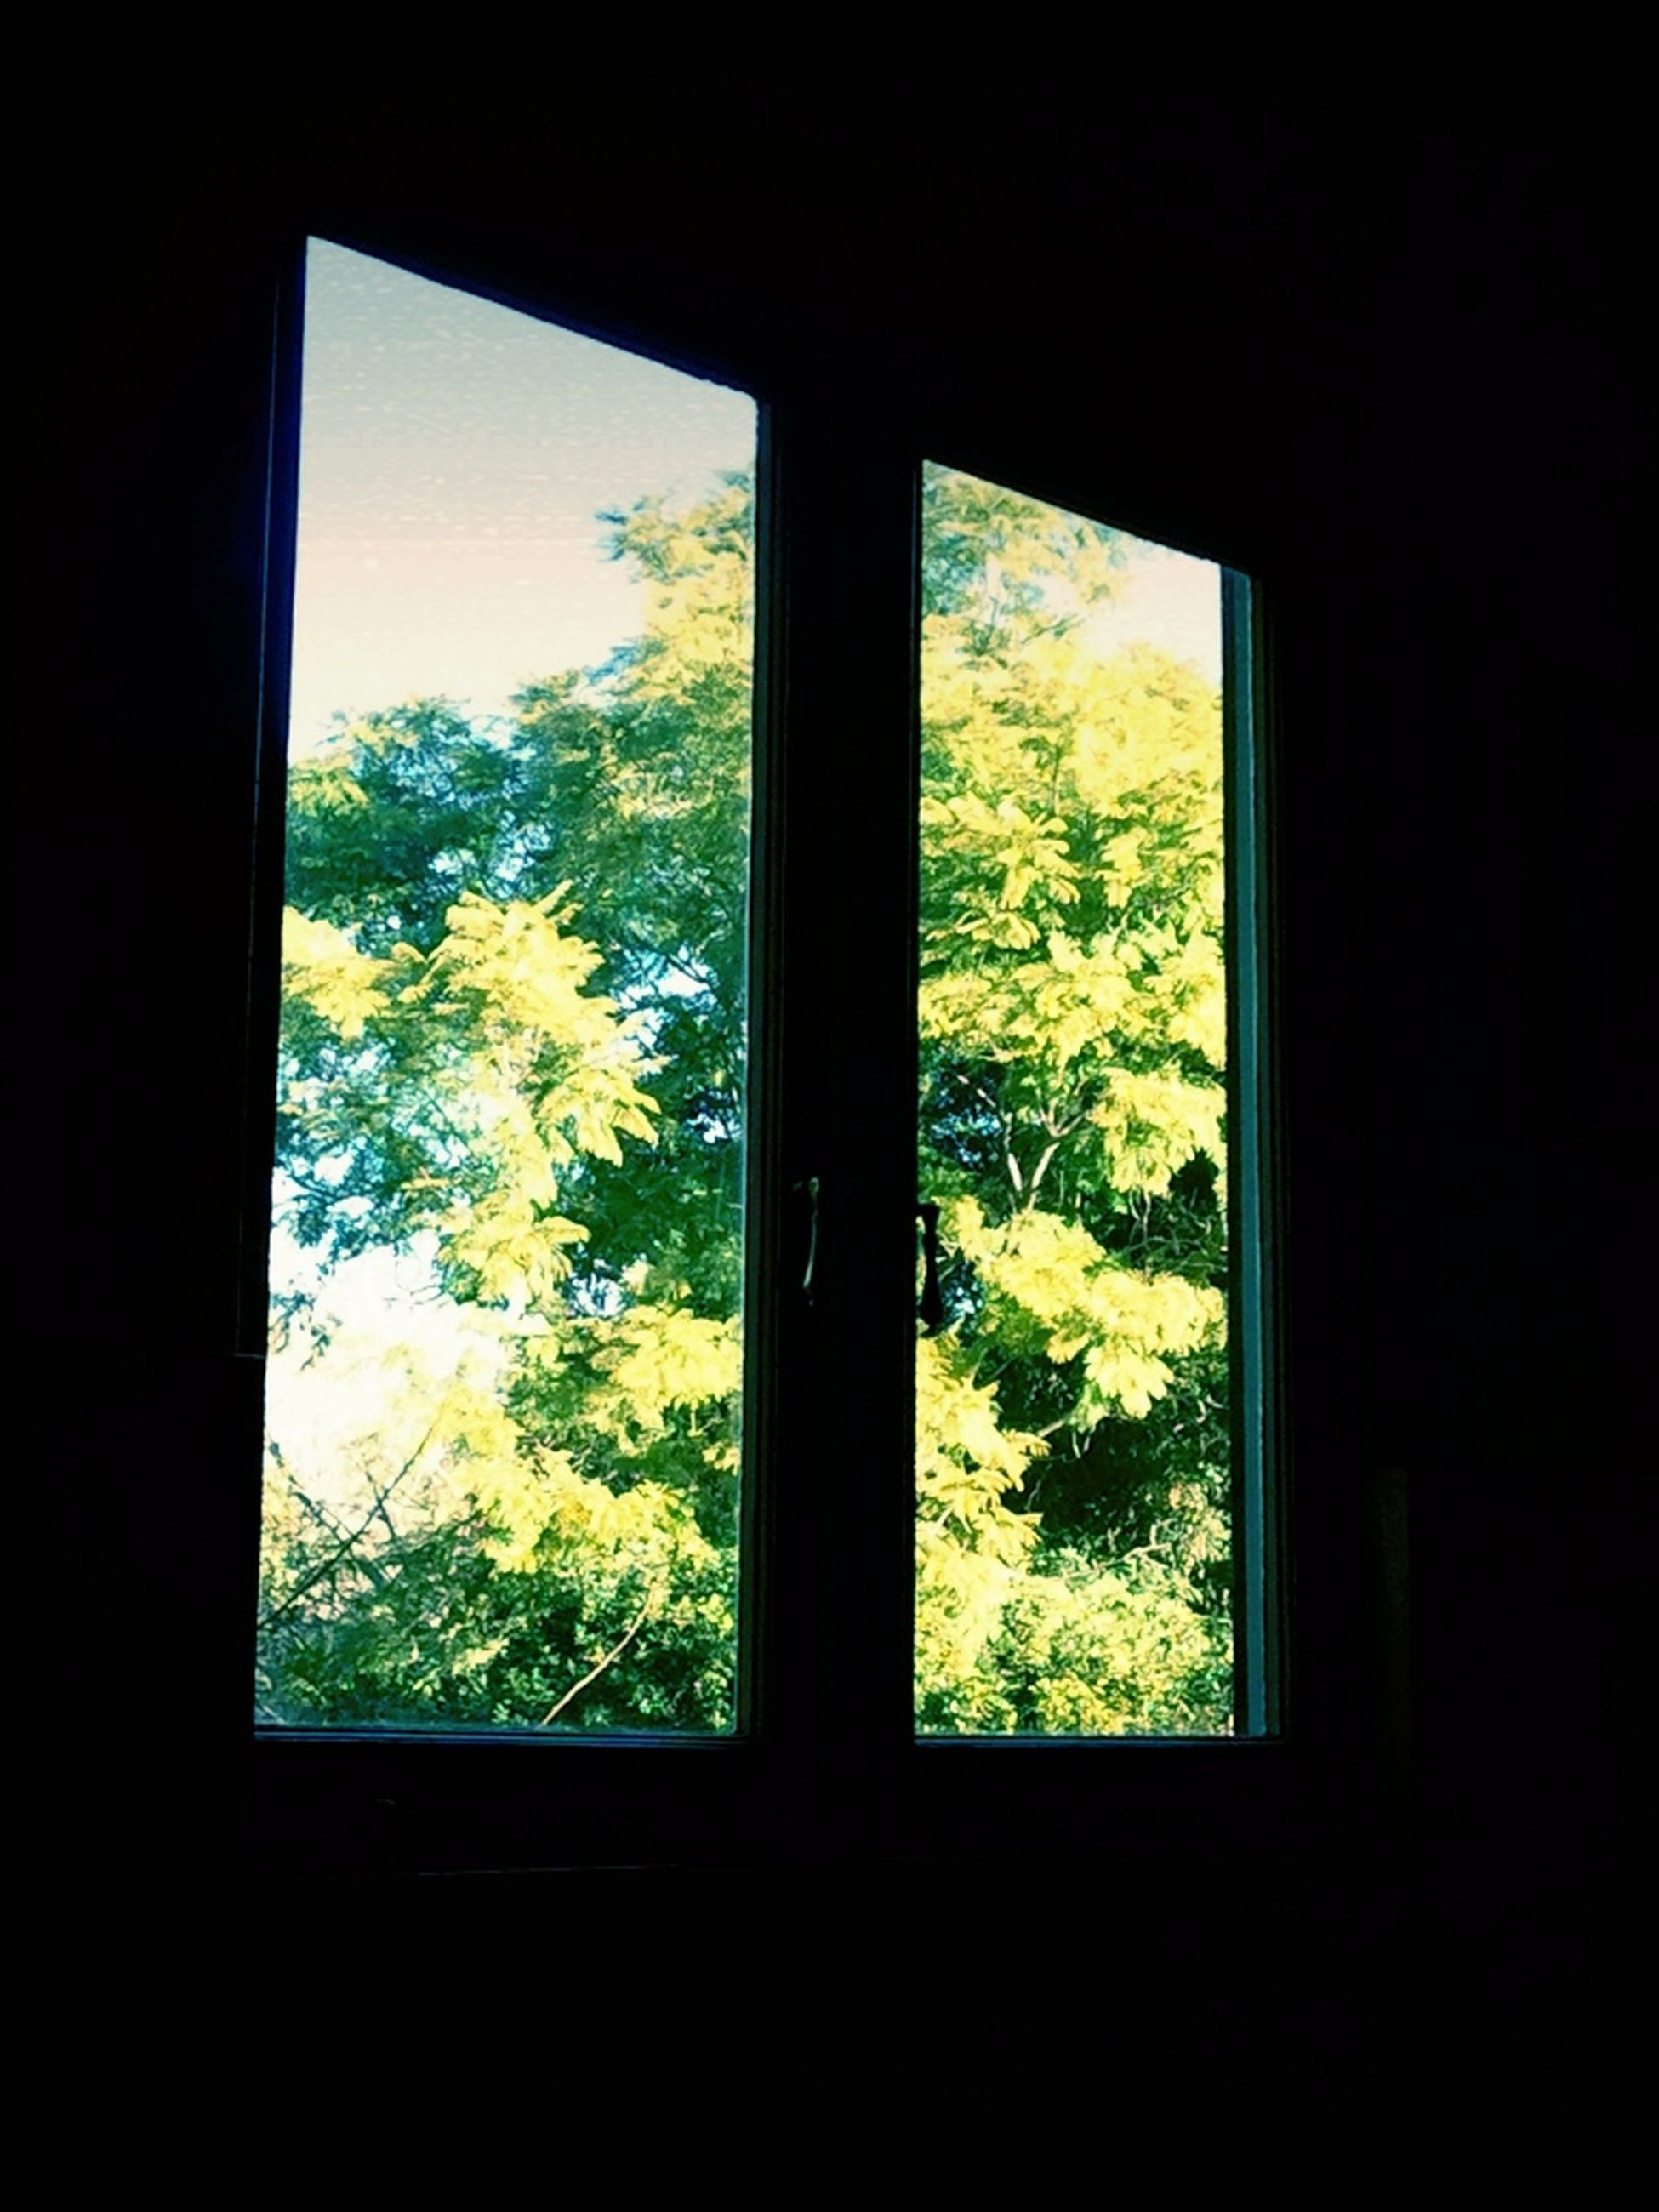 window, indoors, glass - material, transparent, tree, home interior, looking through window, growth, sky, plant, nature, house, silhouette, sunlight, day, dark, no people, beauty in nature, tranquility, landscape